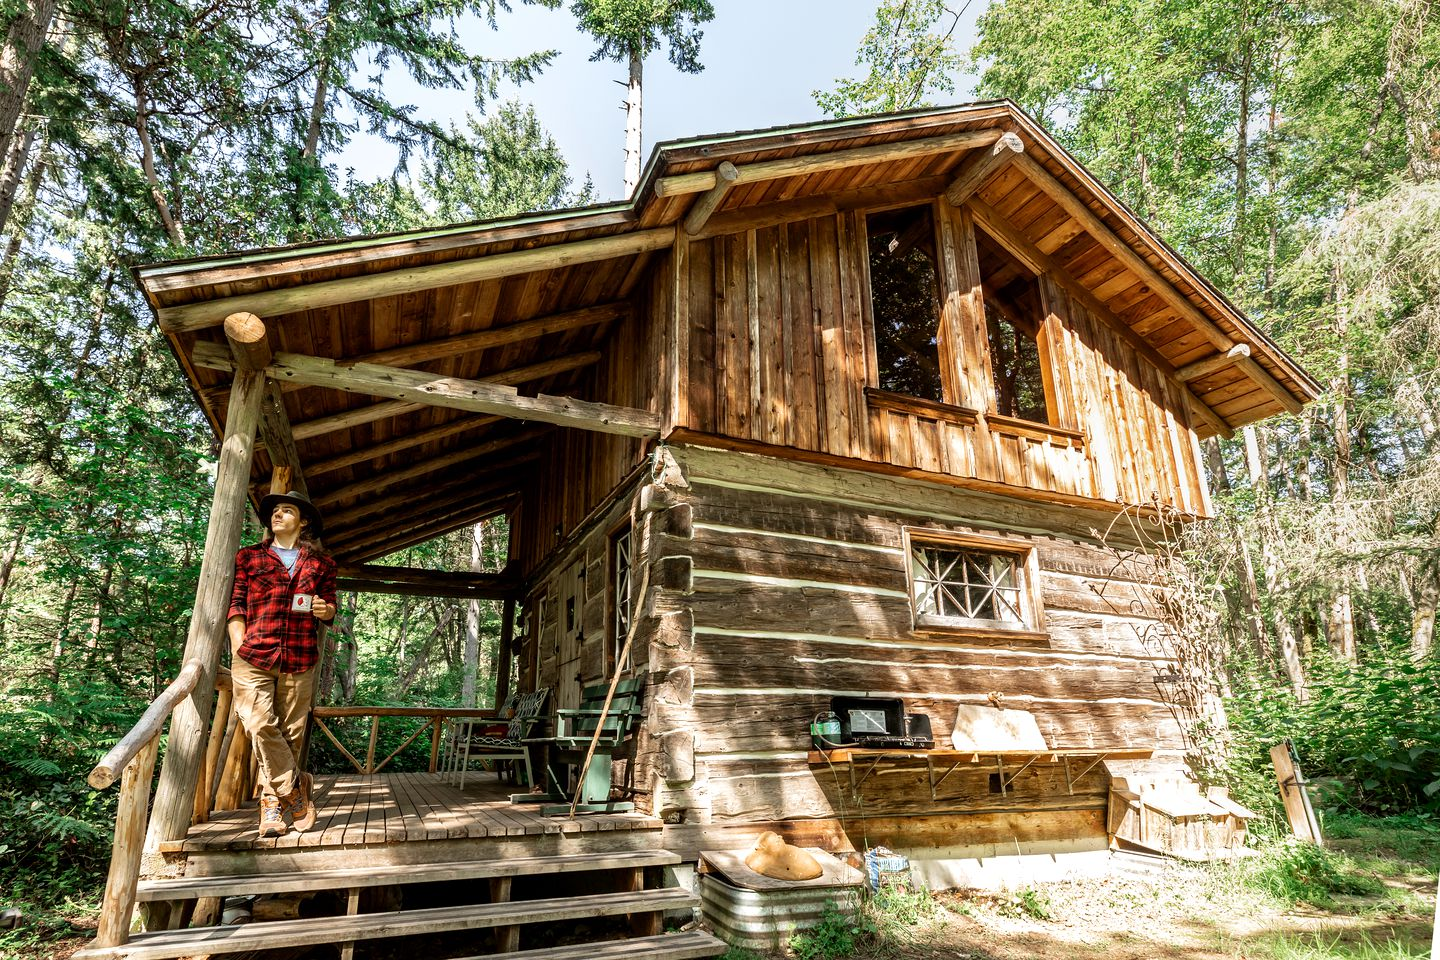 Man drinking a coffee standing on the front porch of a log cabin surrounded by forest.